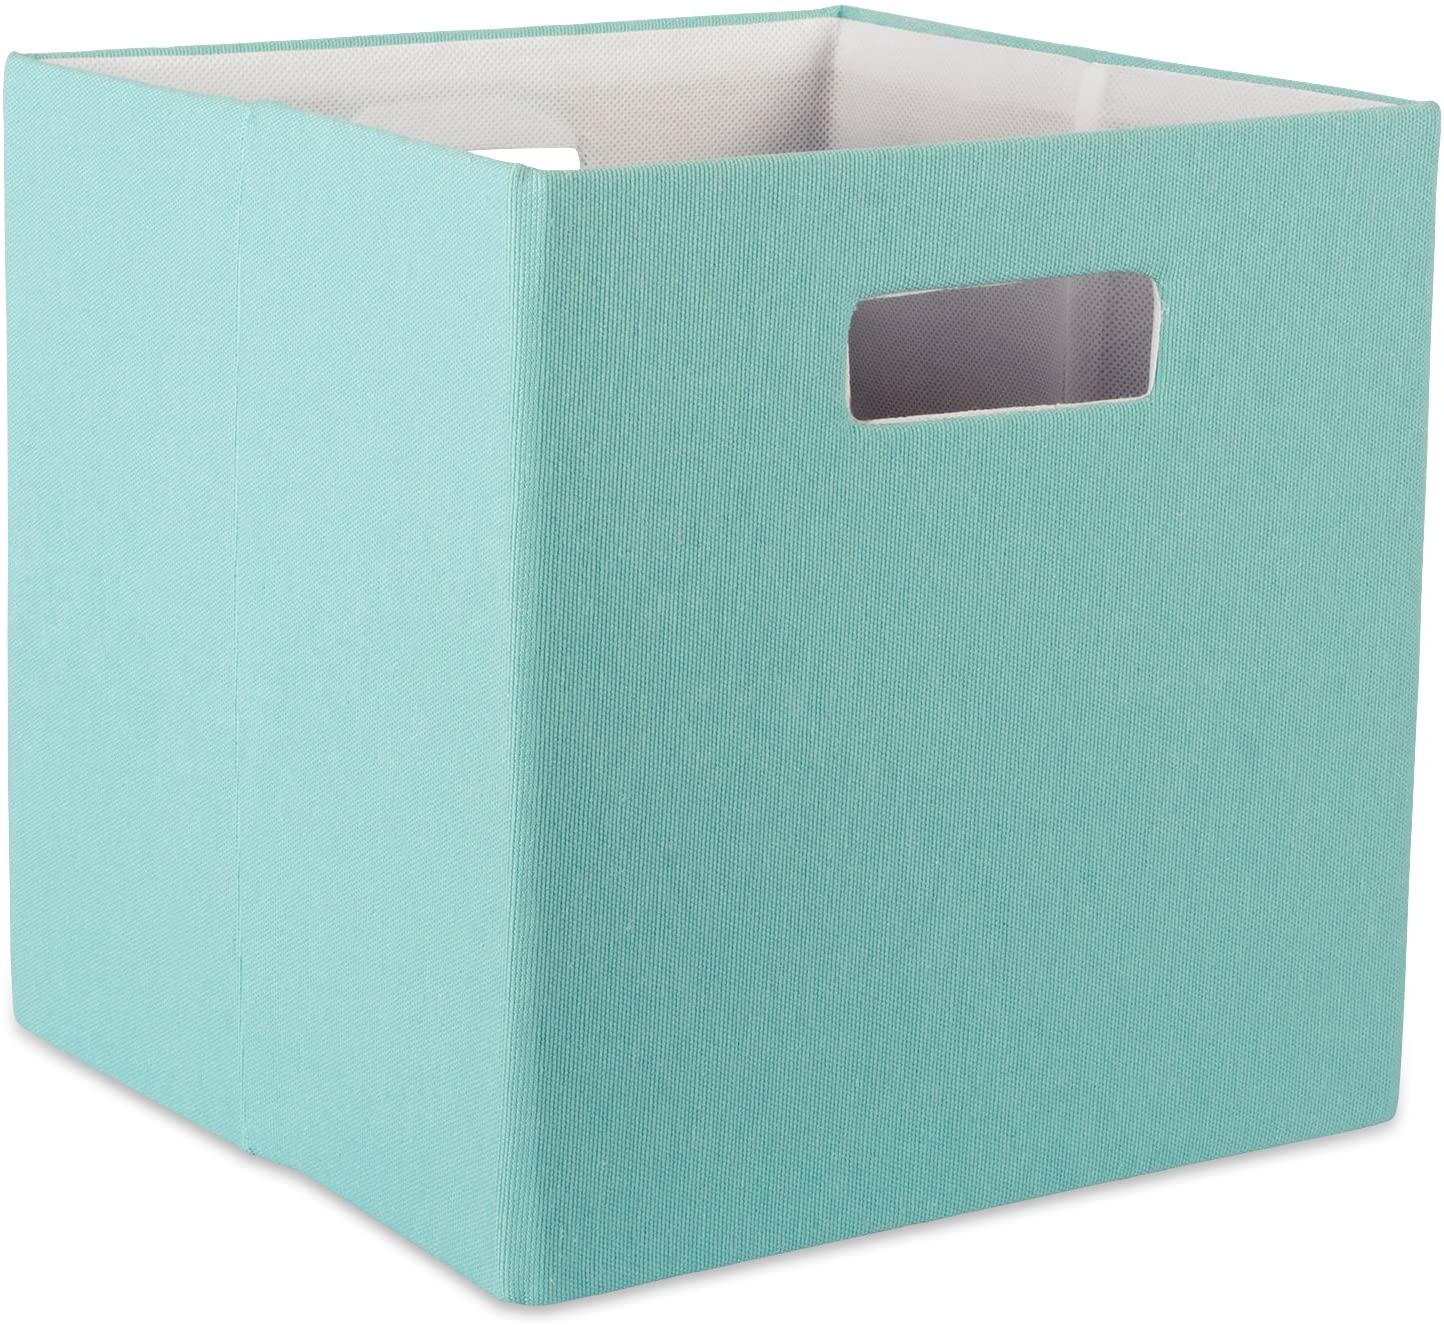 11x11x11 Home Organization, -Solid Off White Offices DII Hard Sided Collapsible Fabric Storage Container for Nursery